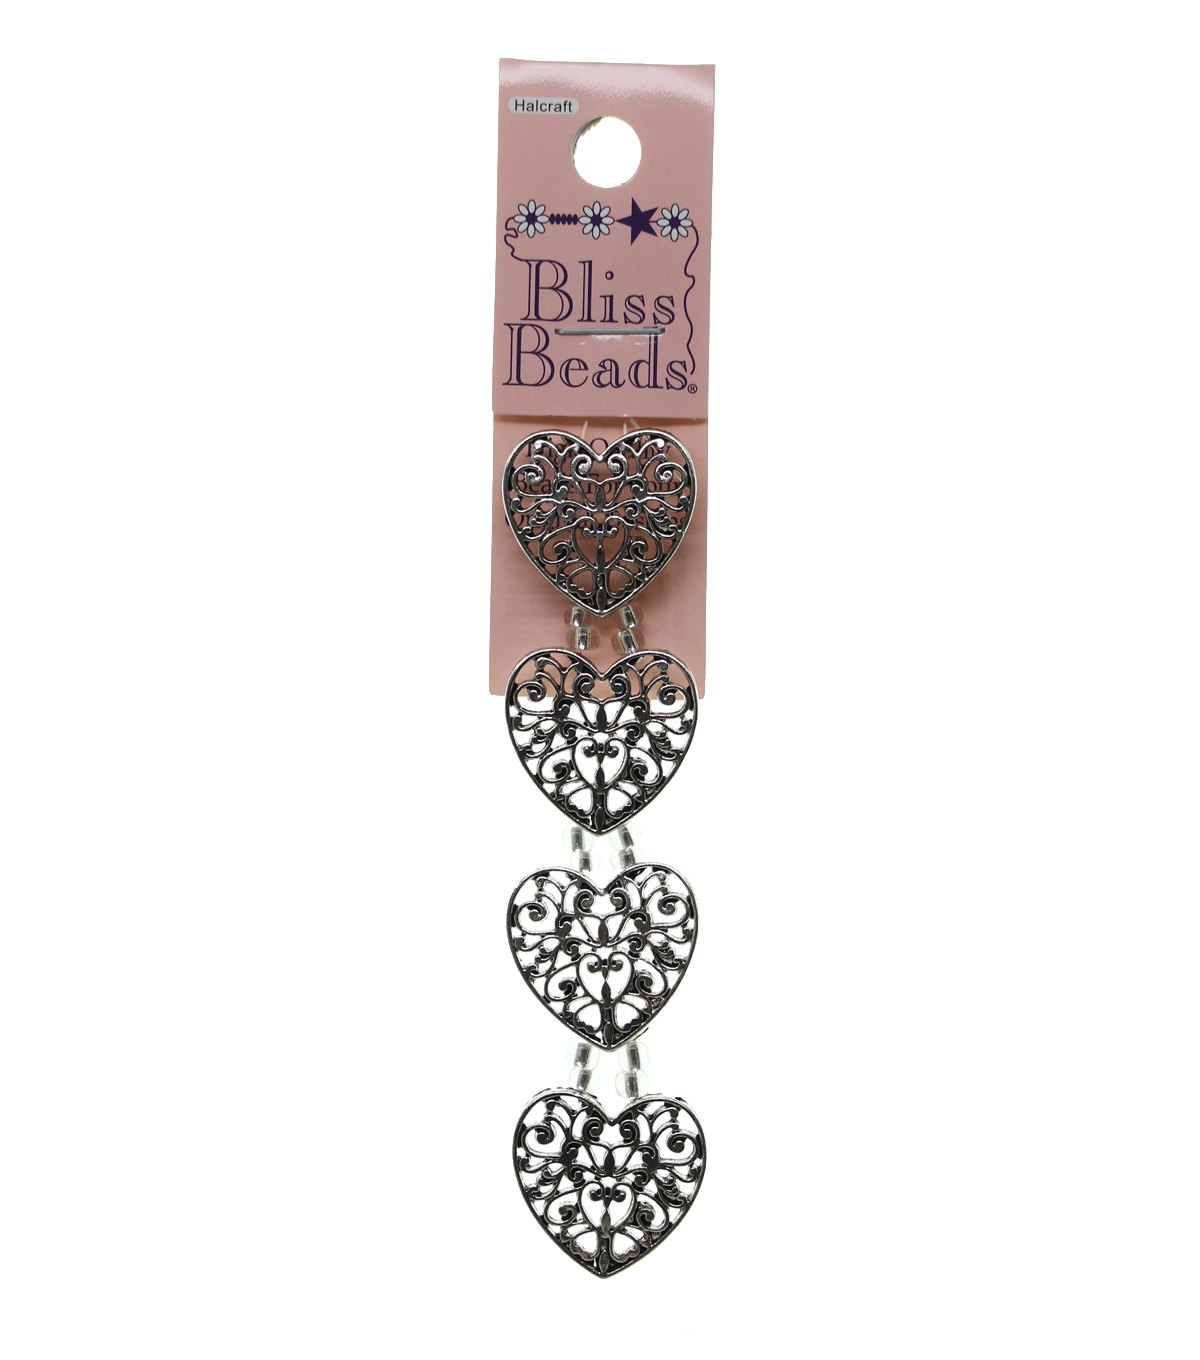 Bliss Beads Silver Plated Filigree Heart